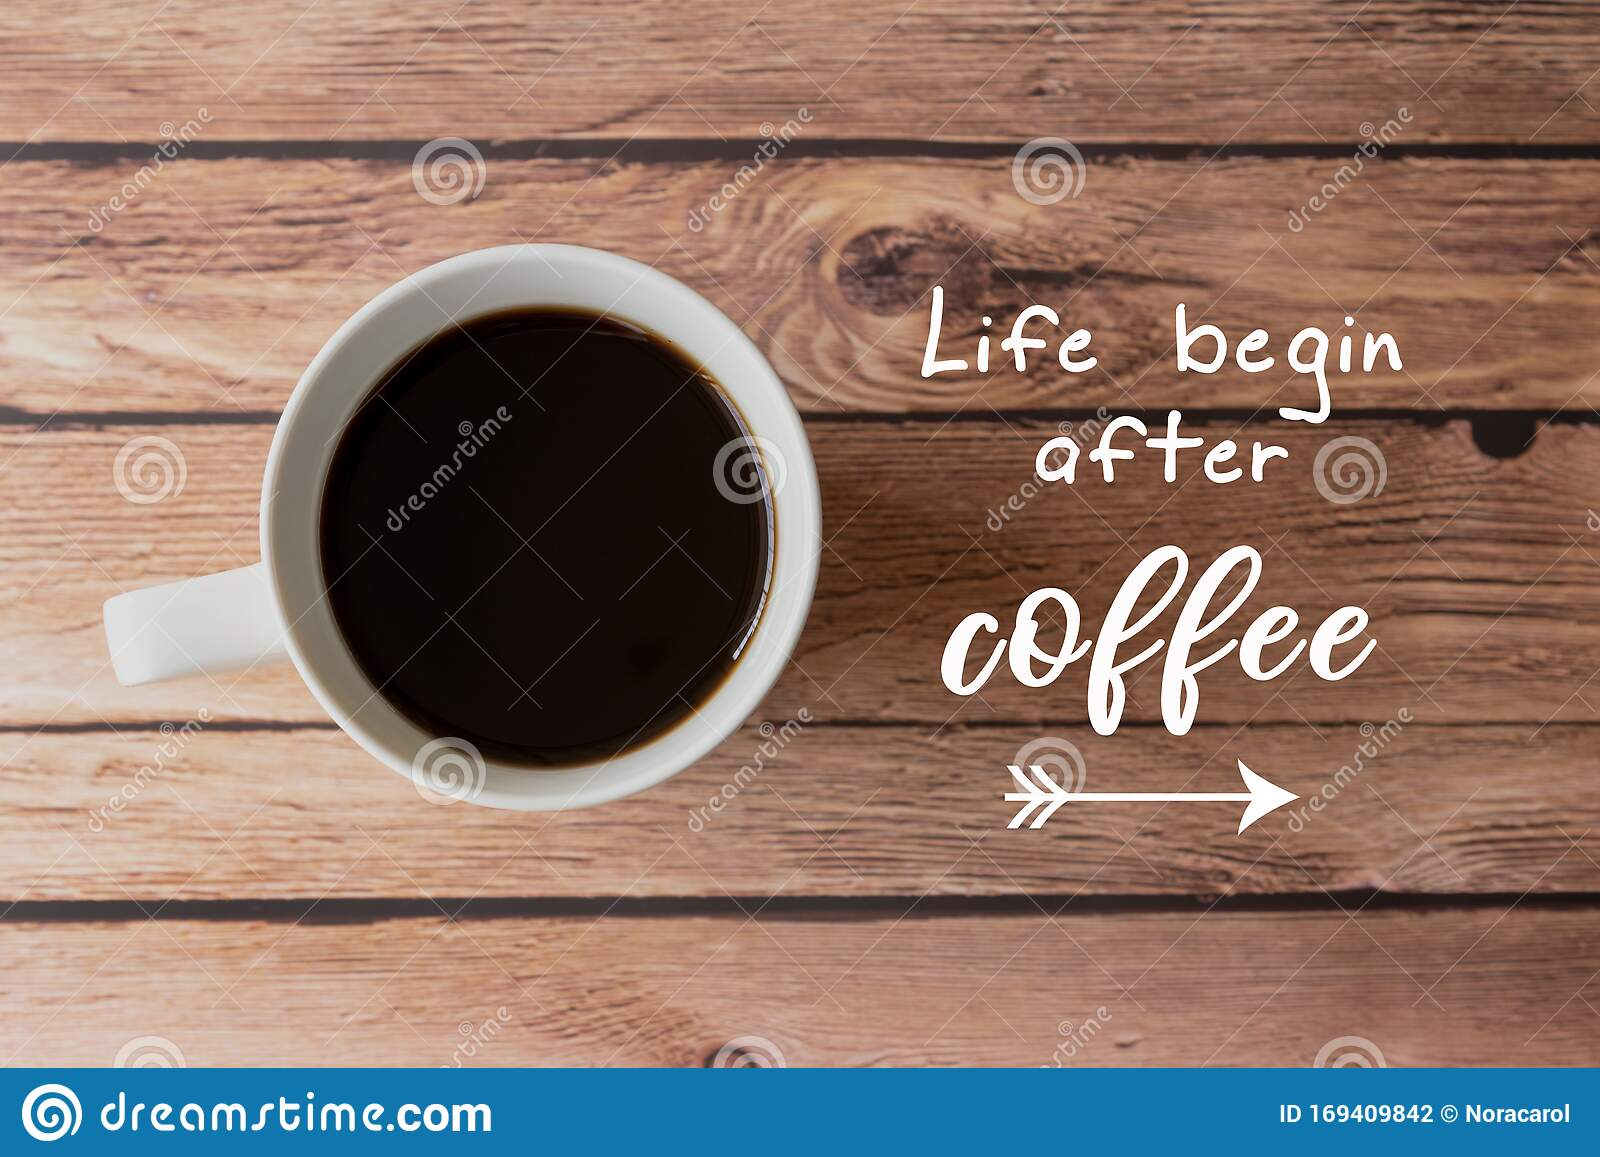 Quotes With Coffee Life Begin After Coffee Stock Photo Image Of Motivation Coffee 169409842